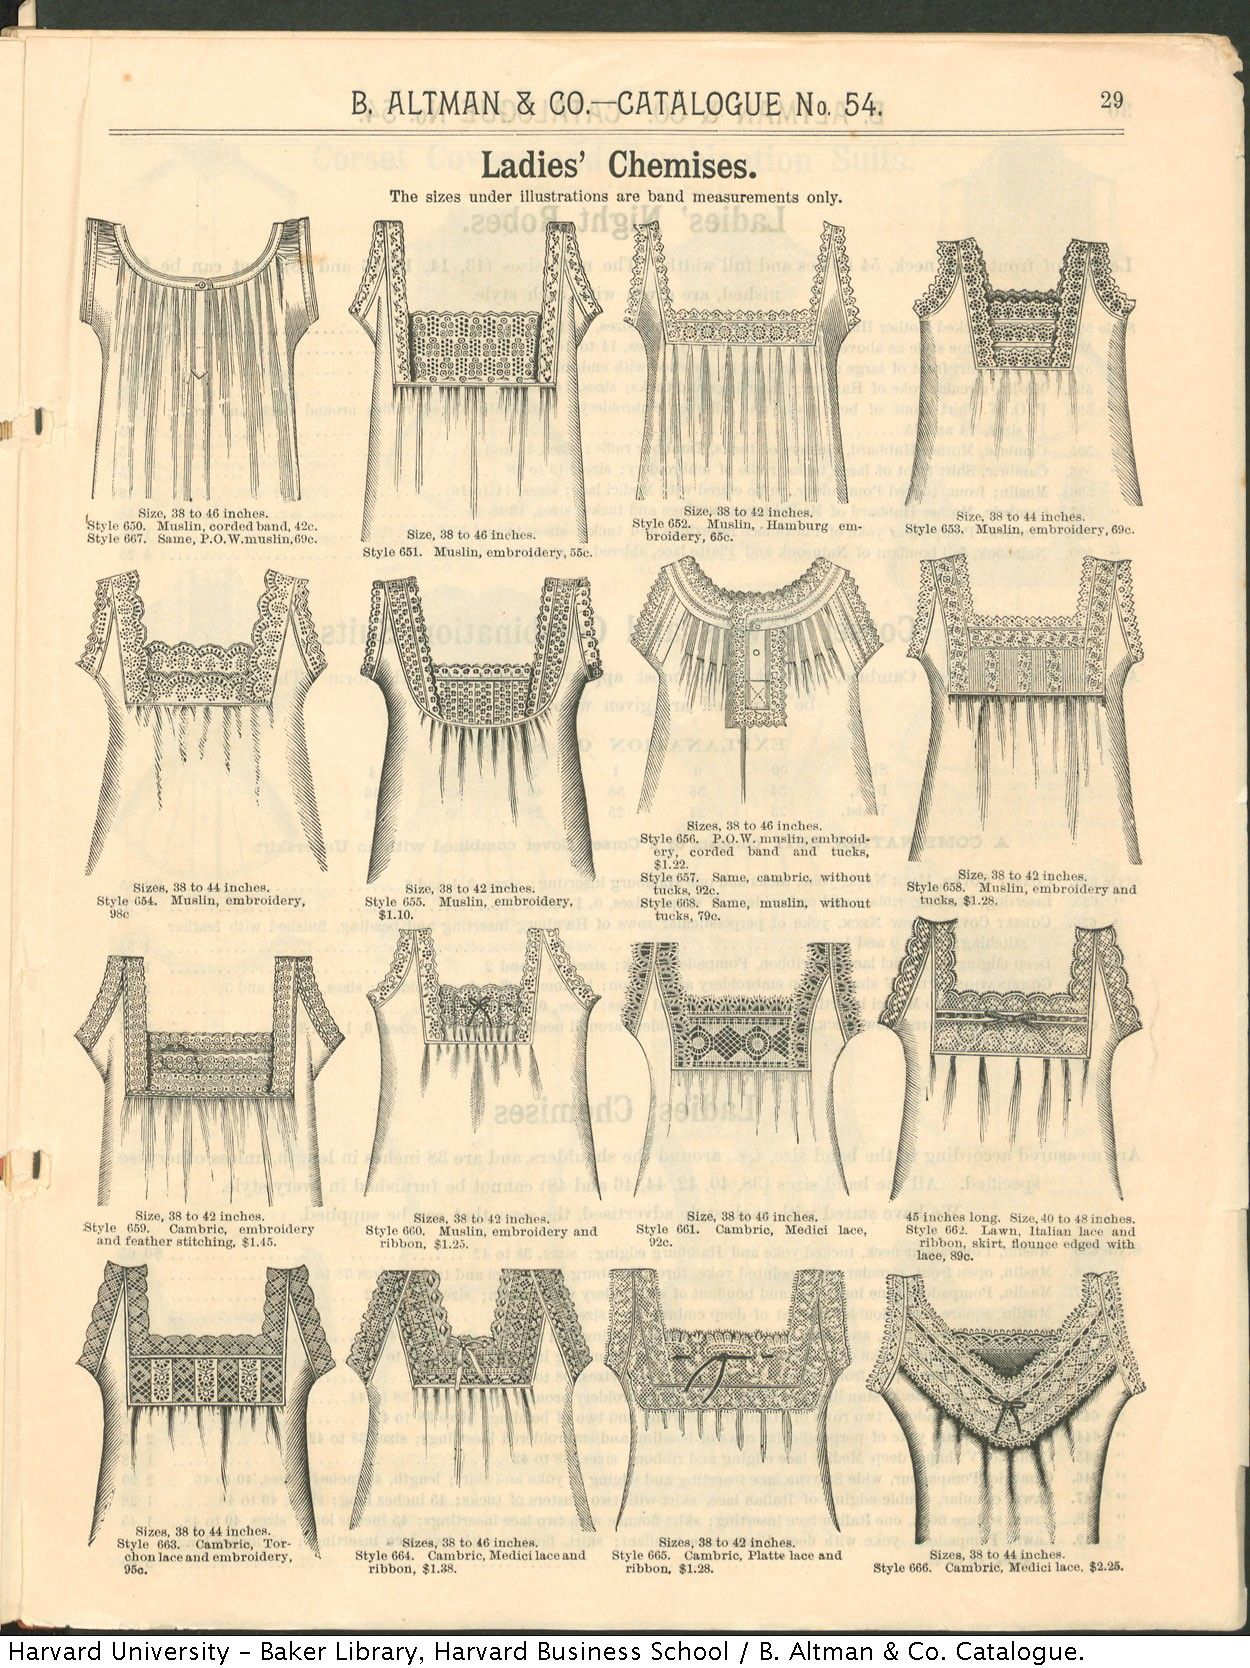 Ladies Chemises from the Winter 1886-87 B. Altman & Co. catalogue - inspiration for necklines on summer tops